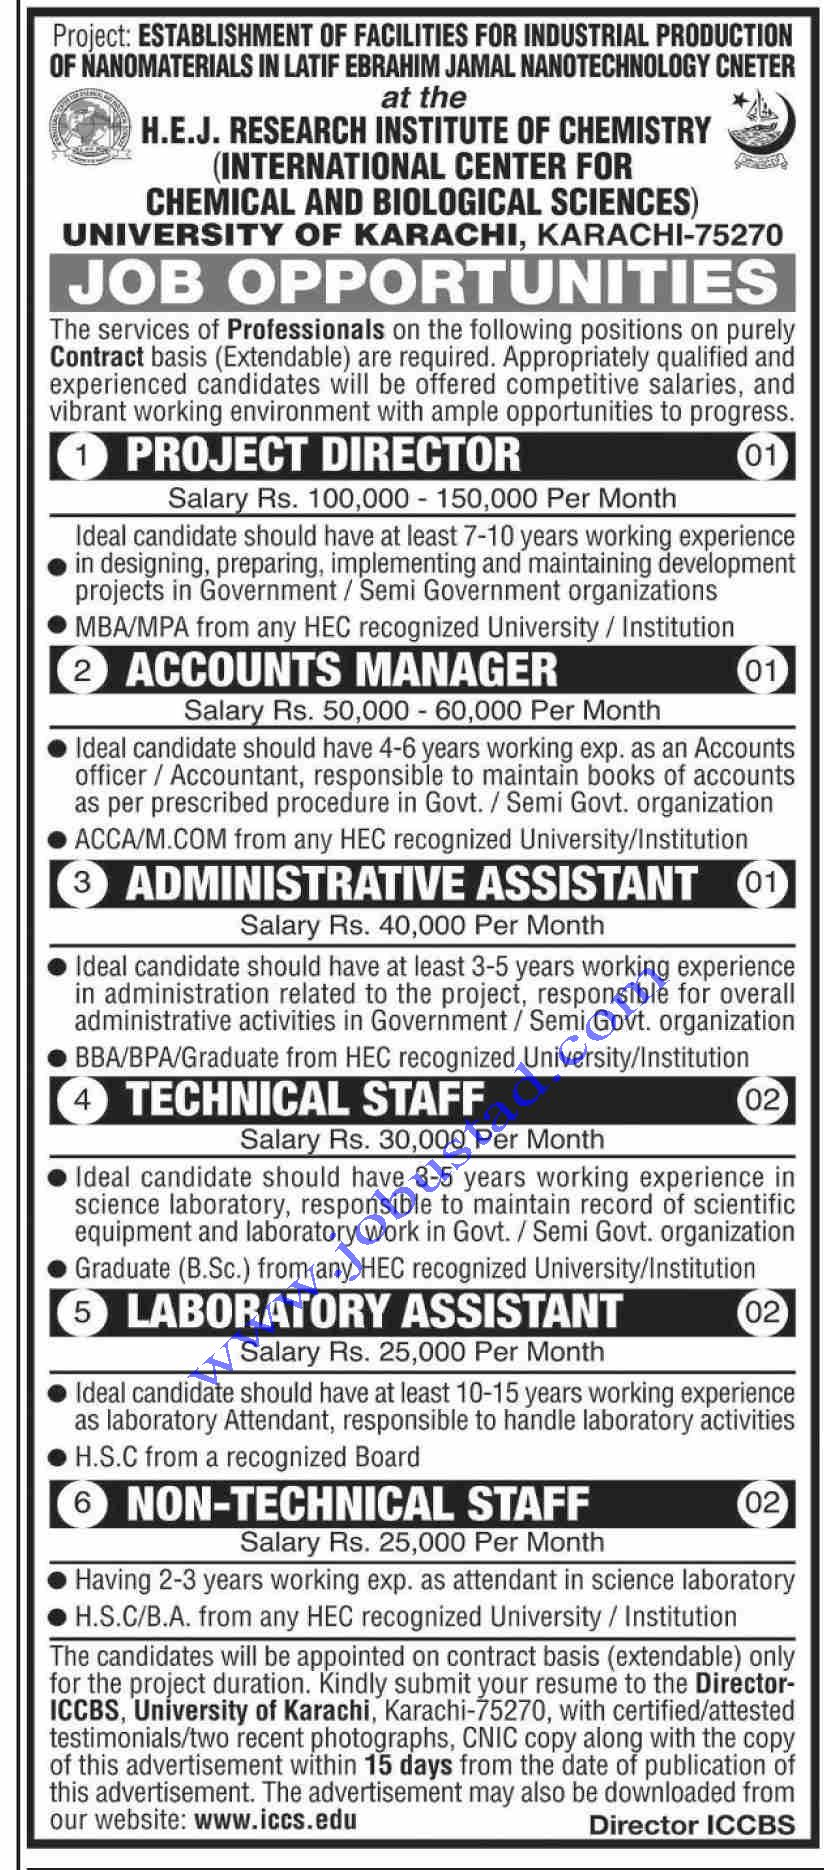 University of Karachi Jobs 2020 in 2020 (With images